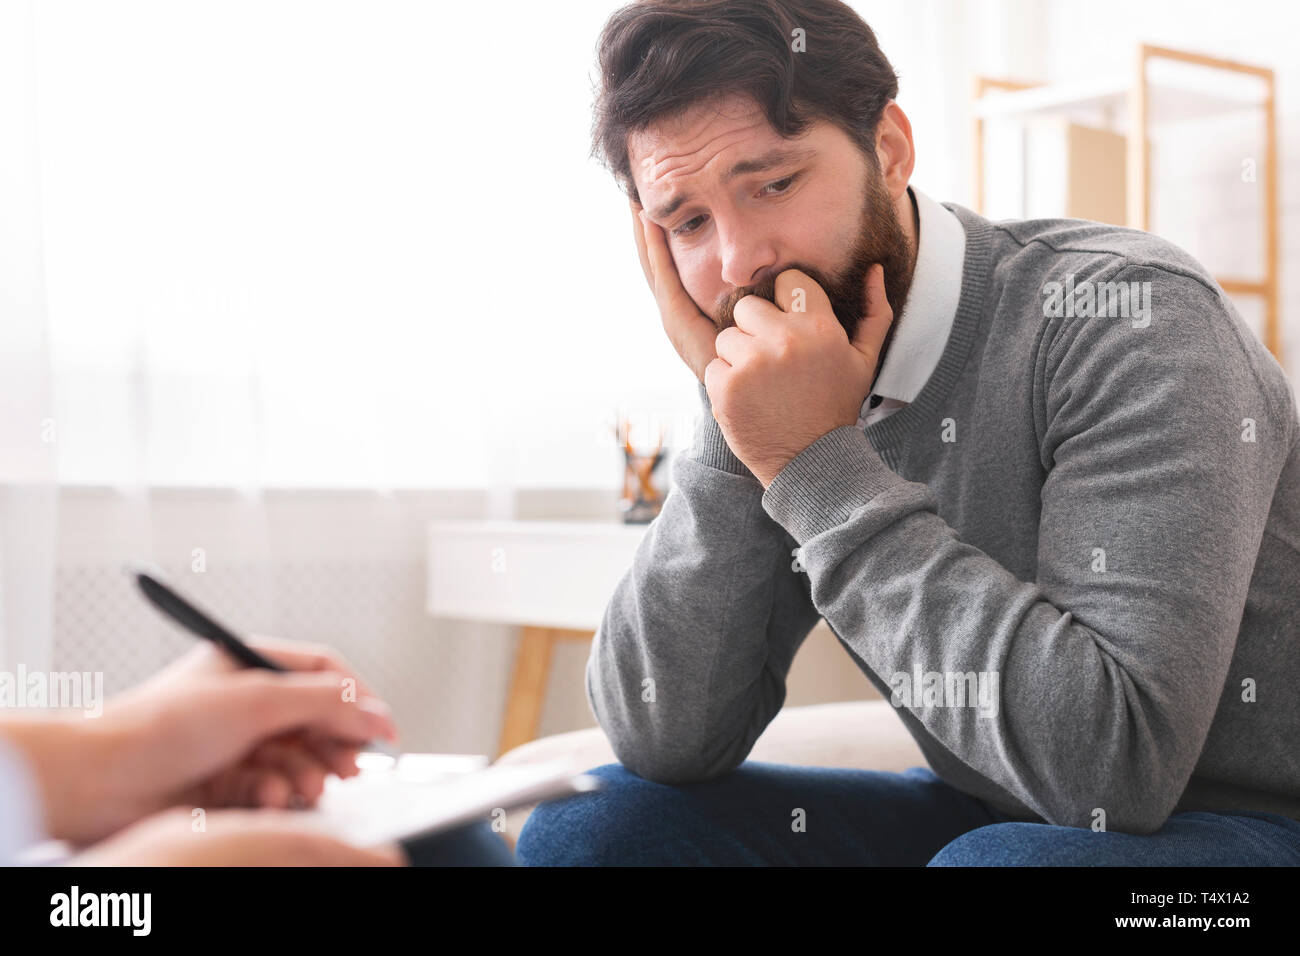 Millennial man with depression during psychotherapy session - Stock Image